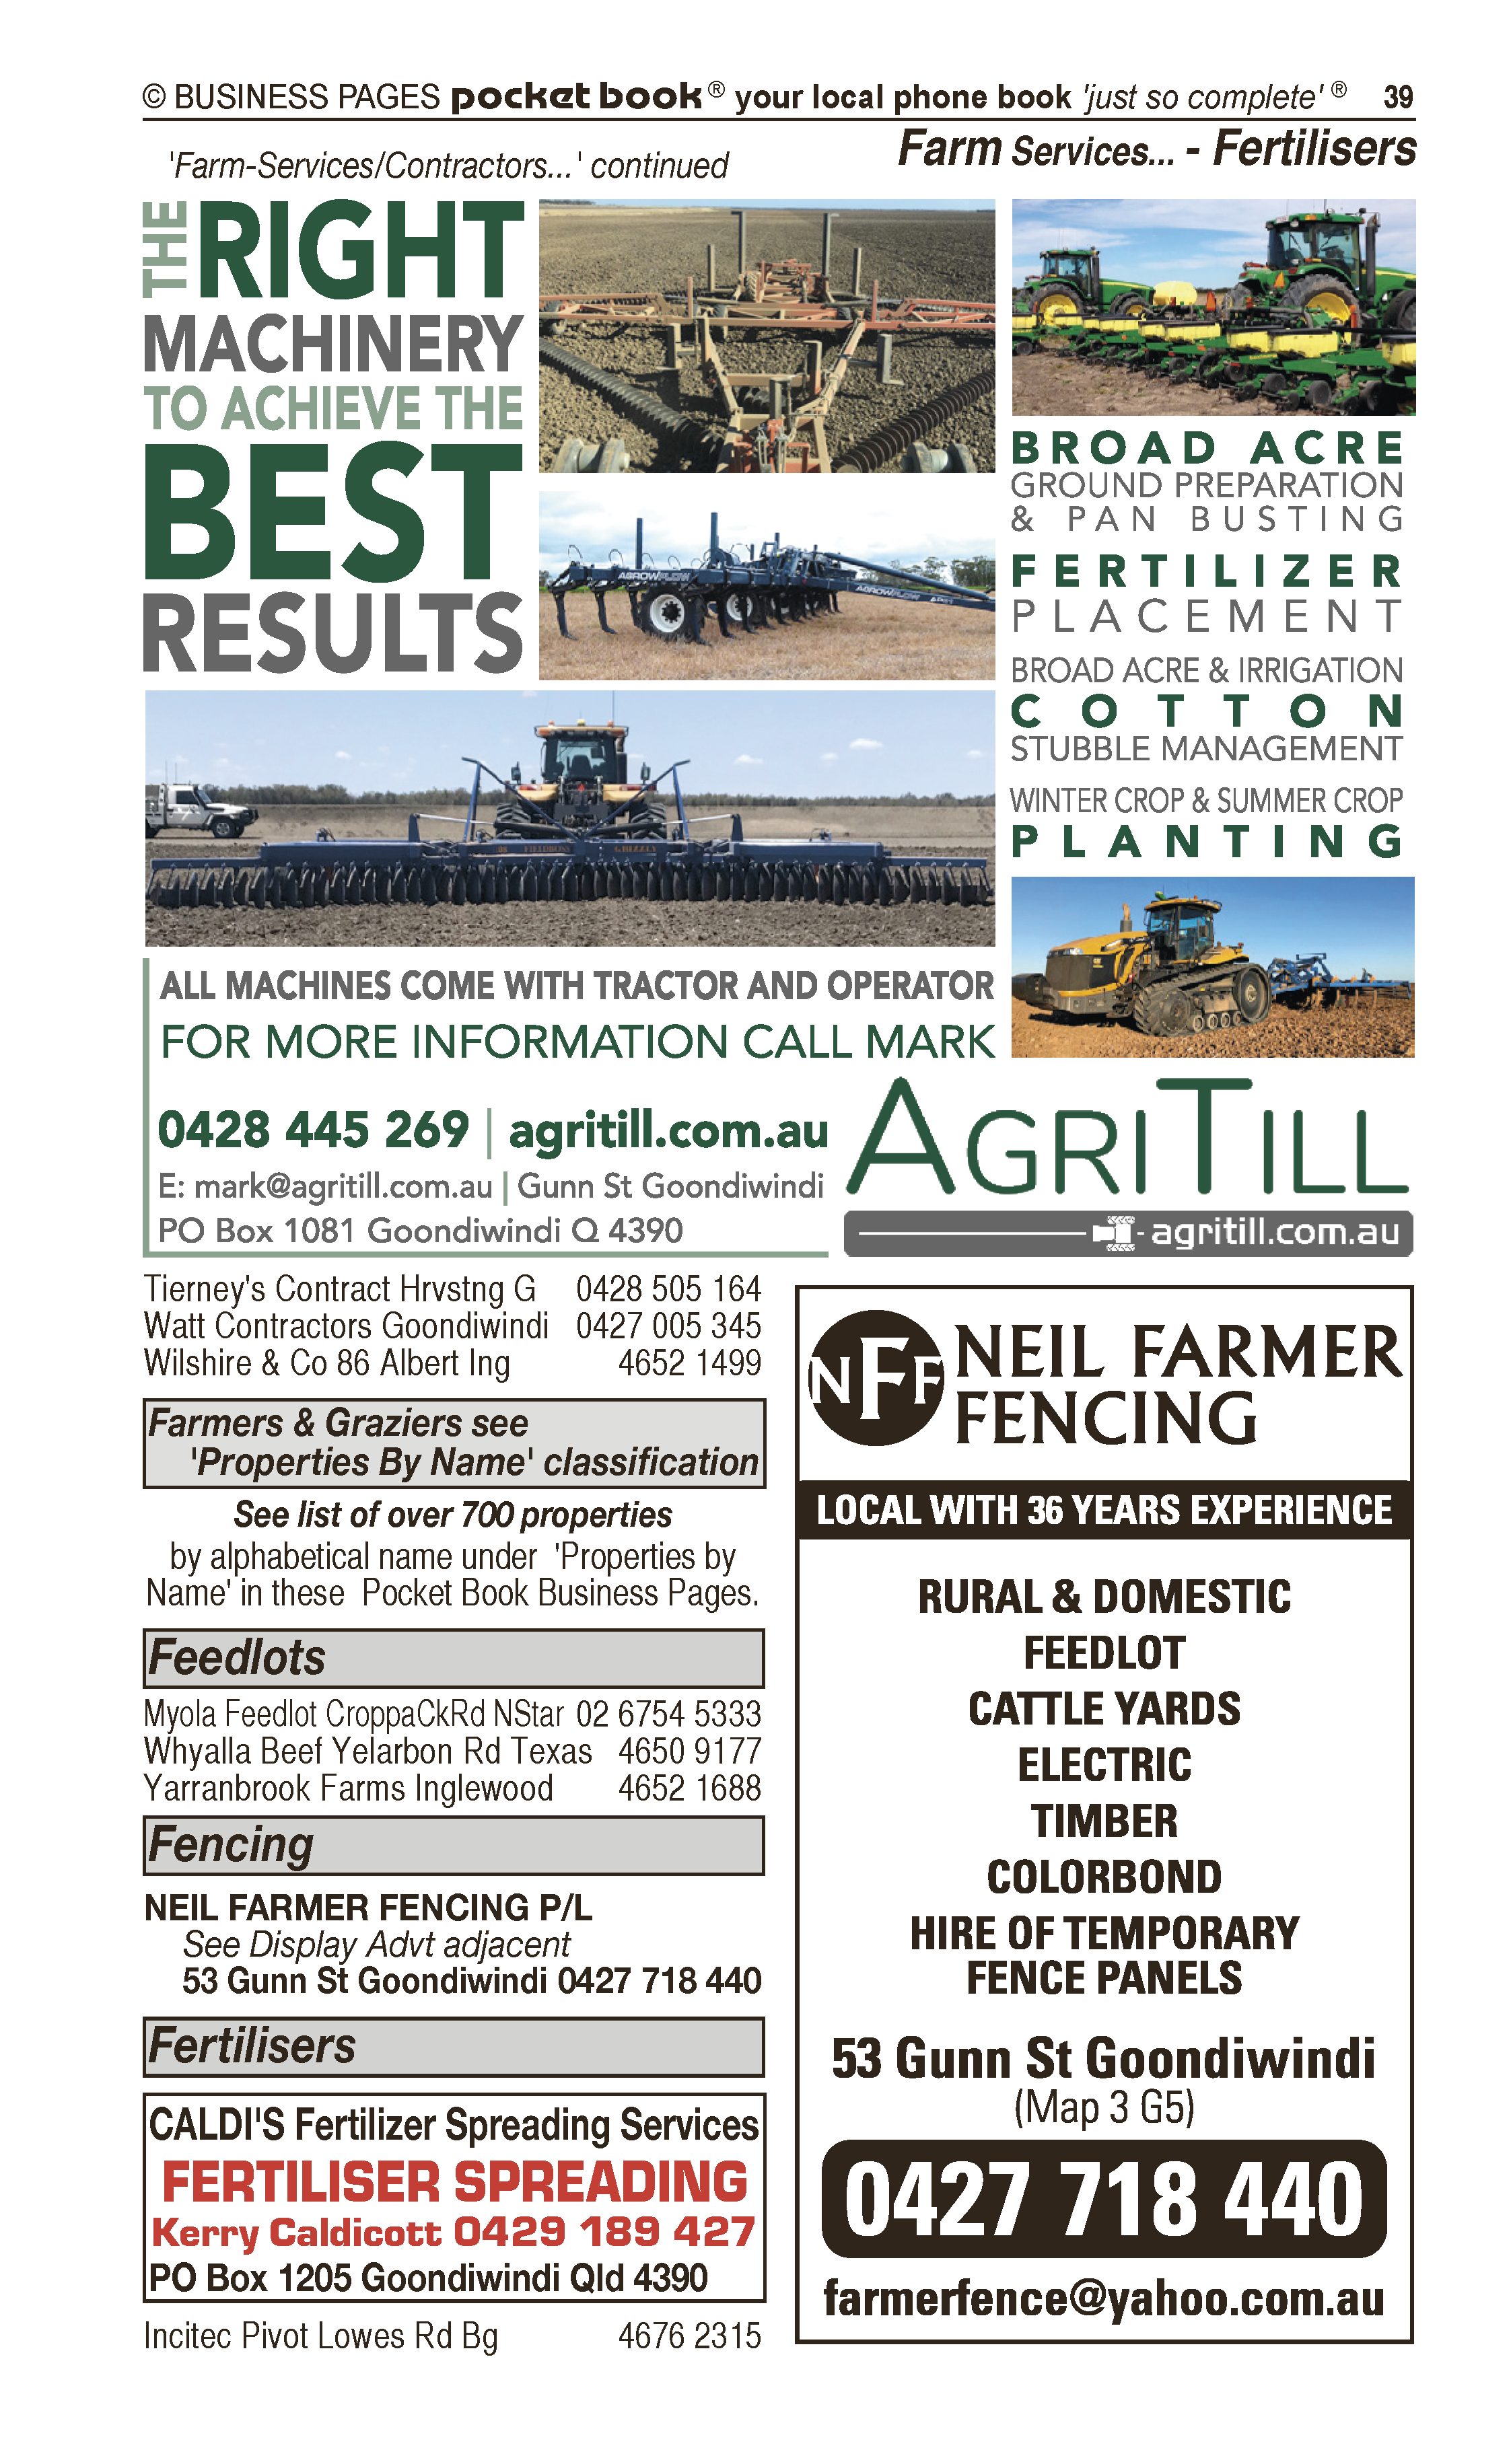 L Bulmer & Co Pty Ltd | Excavating & Earth Moving Services in Goondiwindi | PBezy Pocket Books local directories - page 39